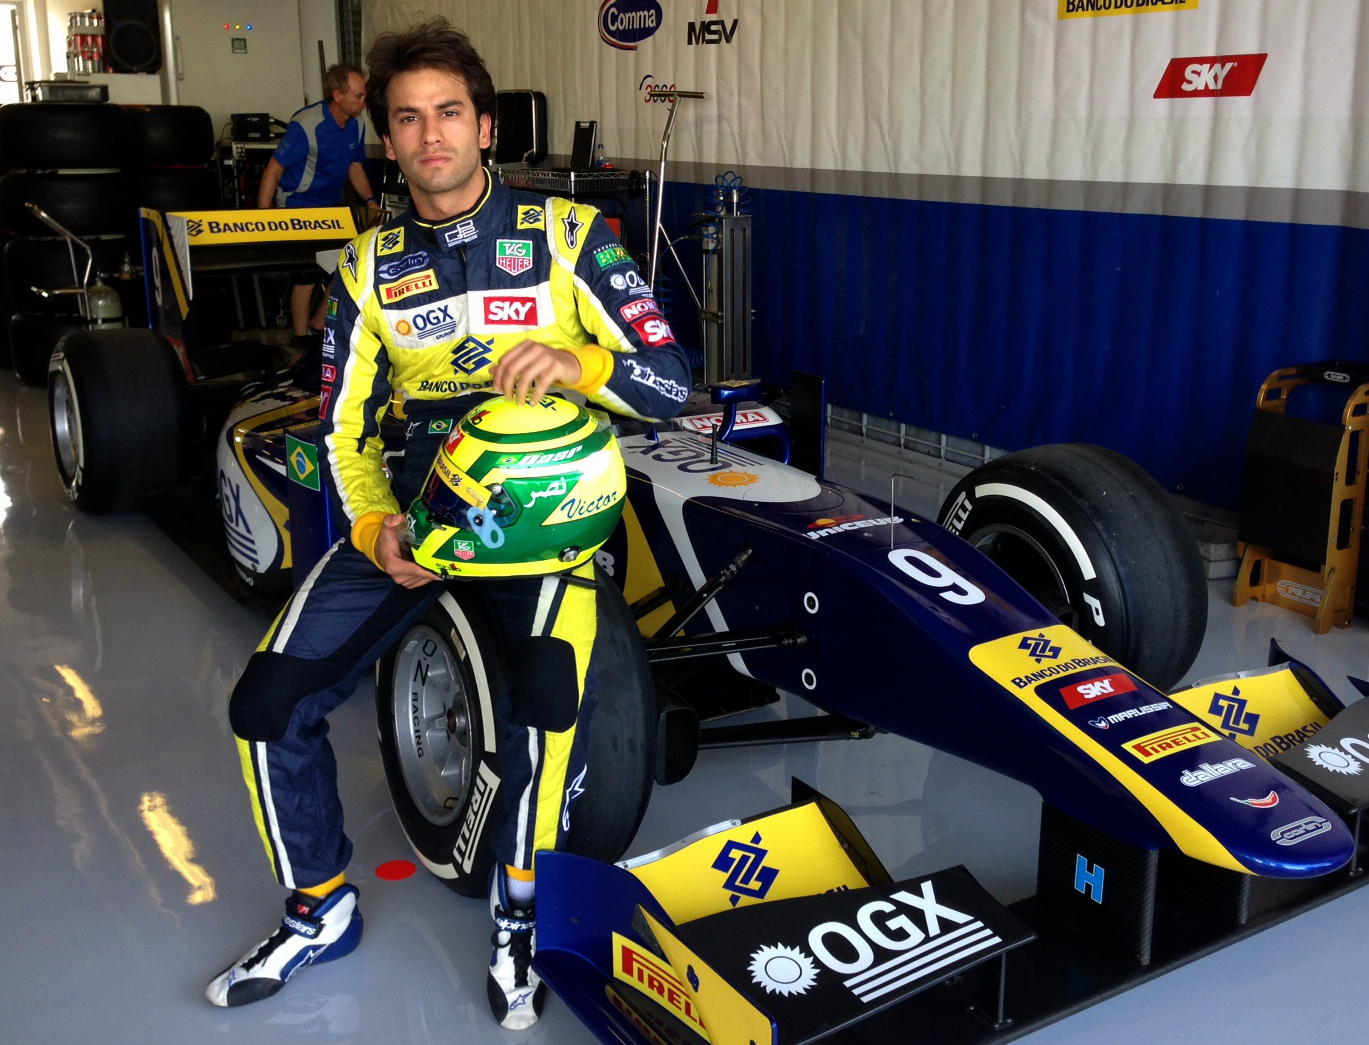 The 24-year old son of father Felipe and mother Olivia, 175 cm tall Felipe Nasr in 2017 photo